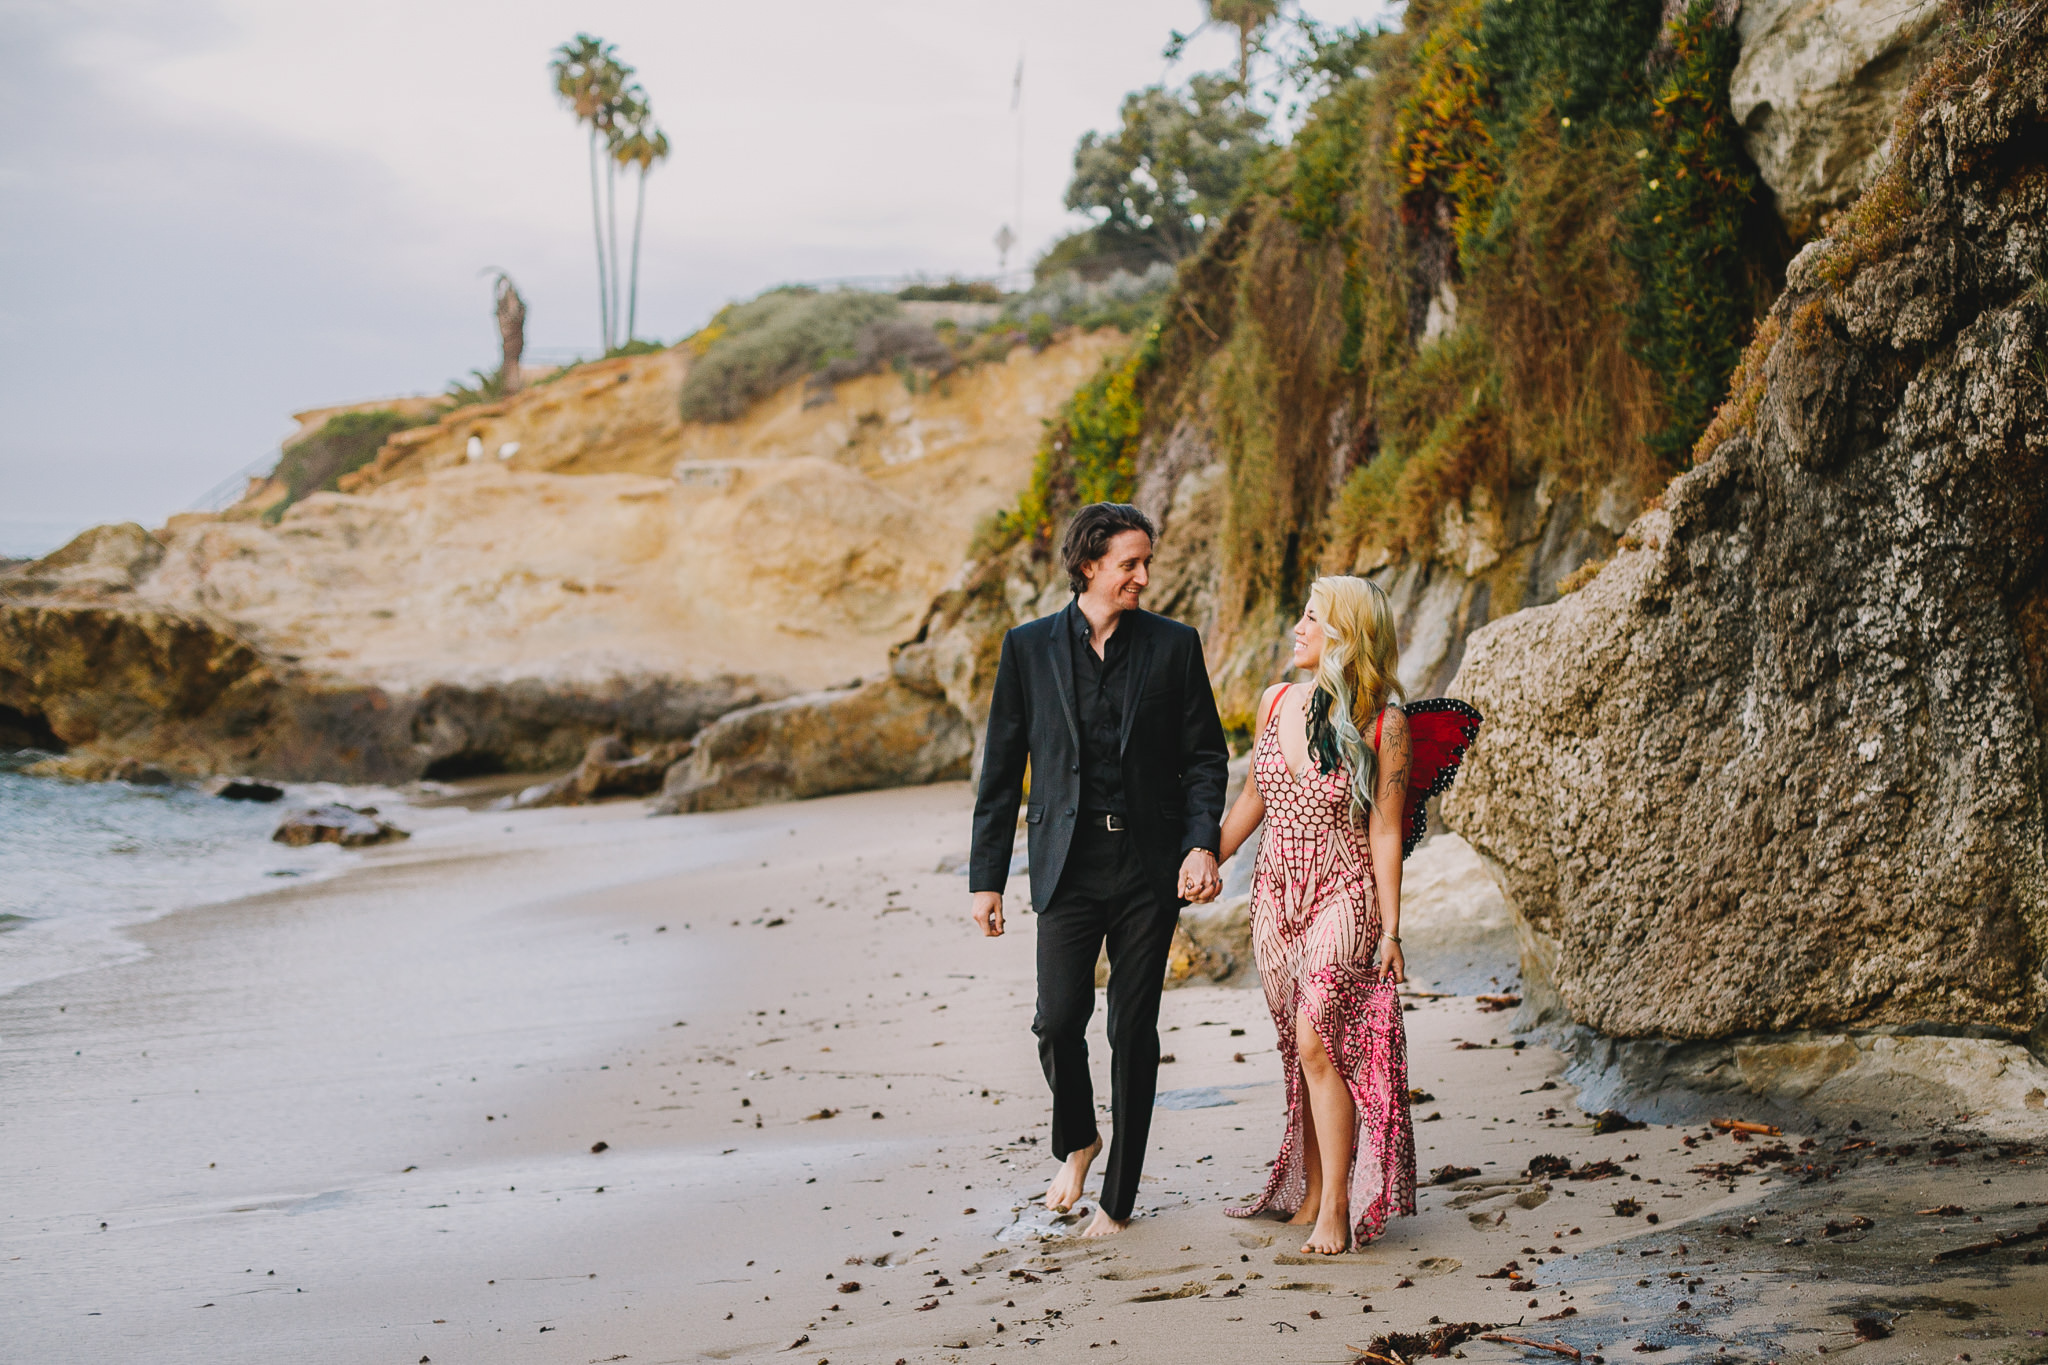 Archer Inspired Photography Amy and Kyle Wedding Engagement Session Long Beach Los Angeles California SoCal Best Top Rated Affordable Lifestyle Documentary Natural Light Fun Offbeat Unique Photographer-5.jpg